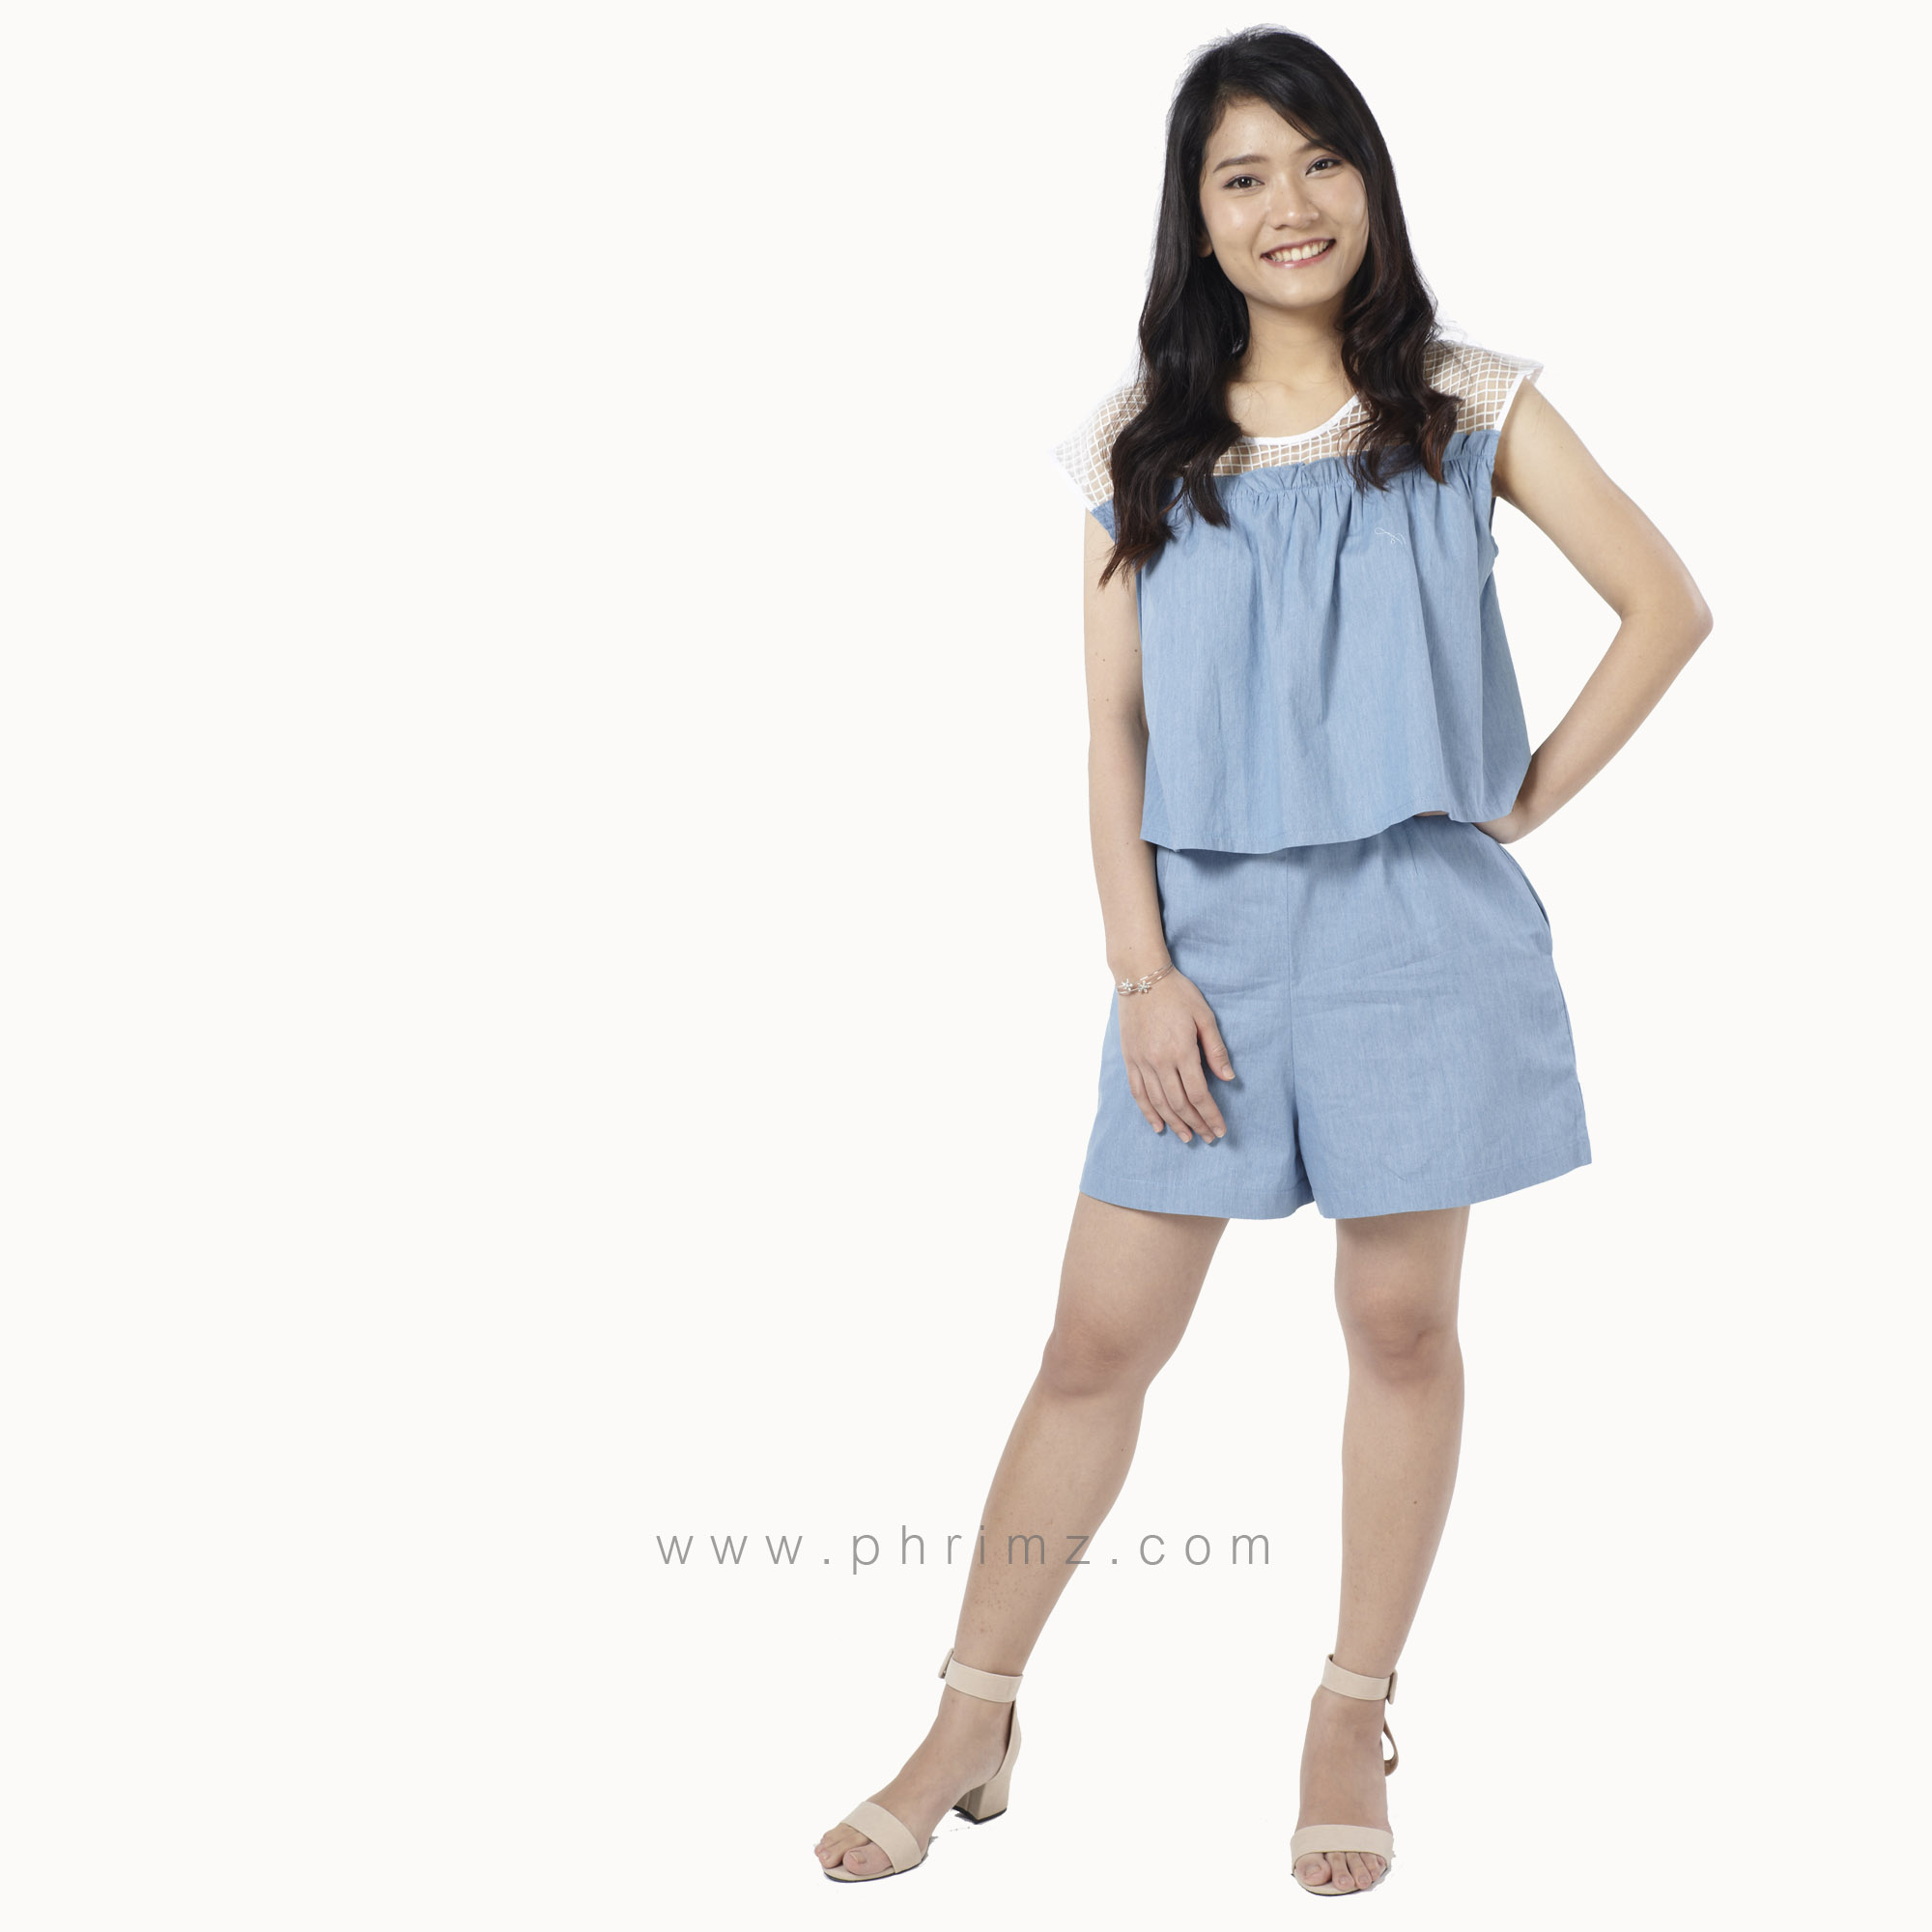 ชุดให้นม Phrimz : Zena Breastfeeding Jumpsuit - Light Blue Jeans